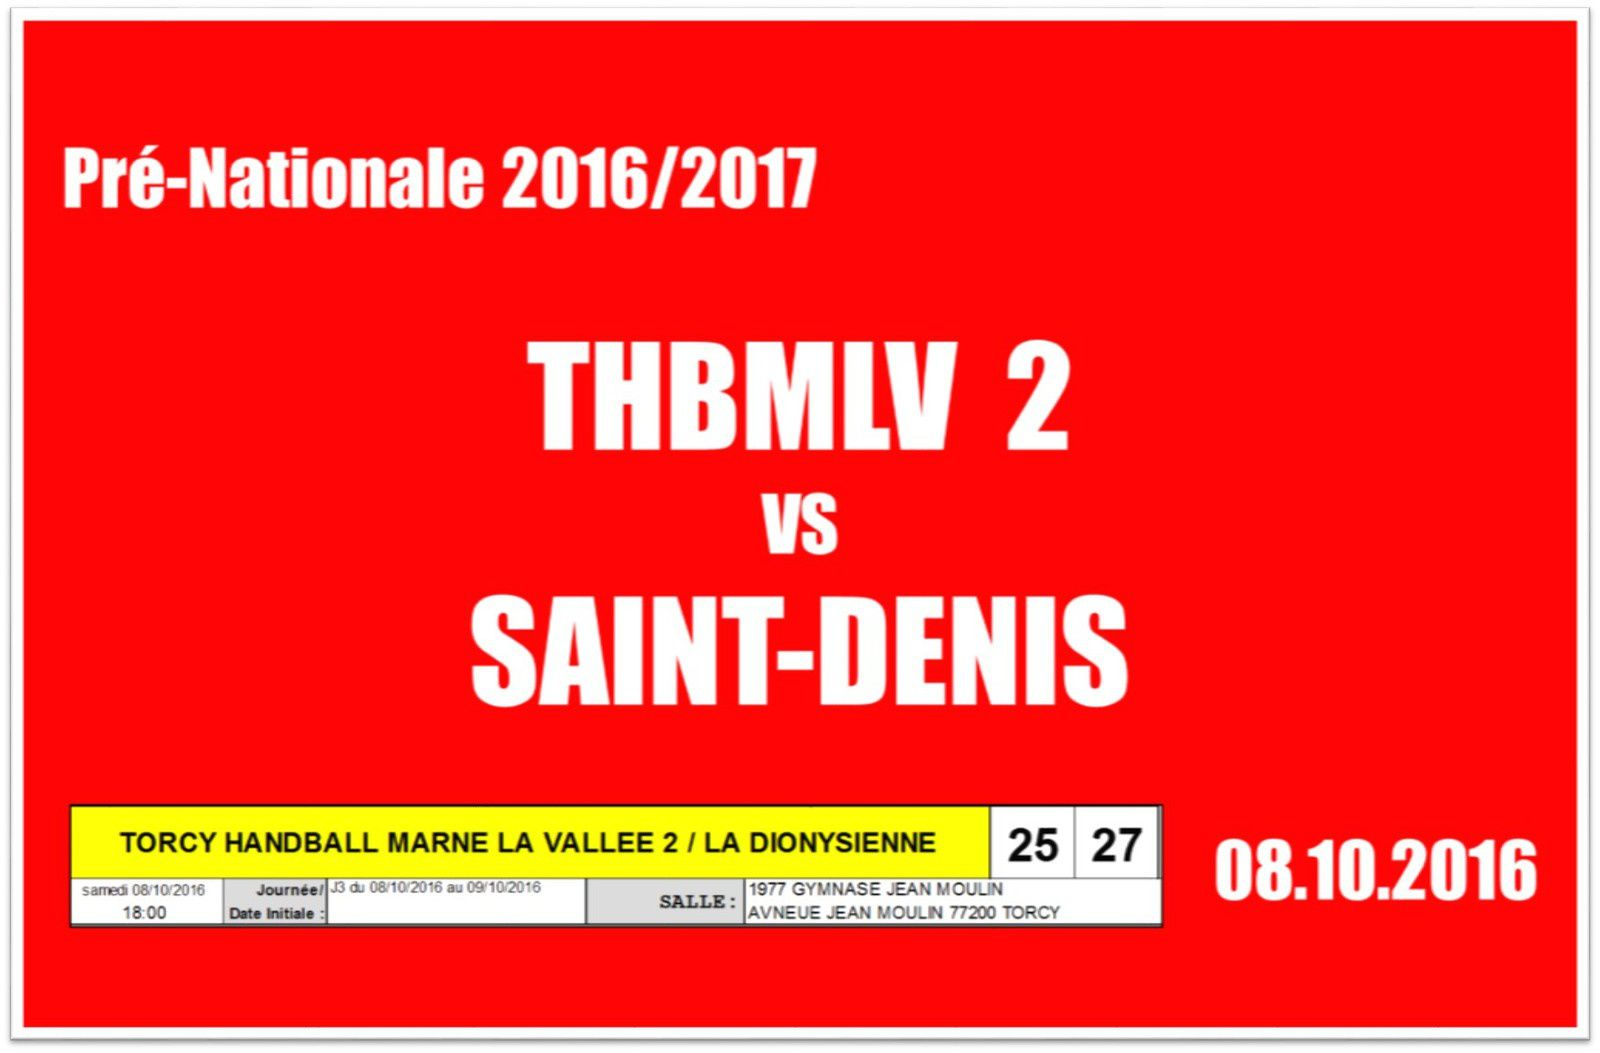 THBMLV 2 vs La Dionysienne (Pré-Nationale) 08.10.2016